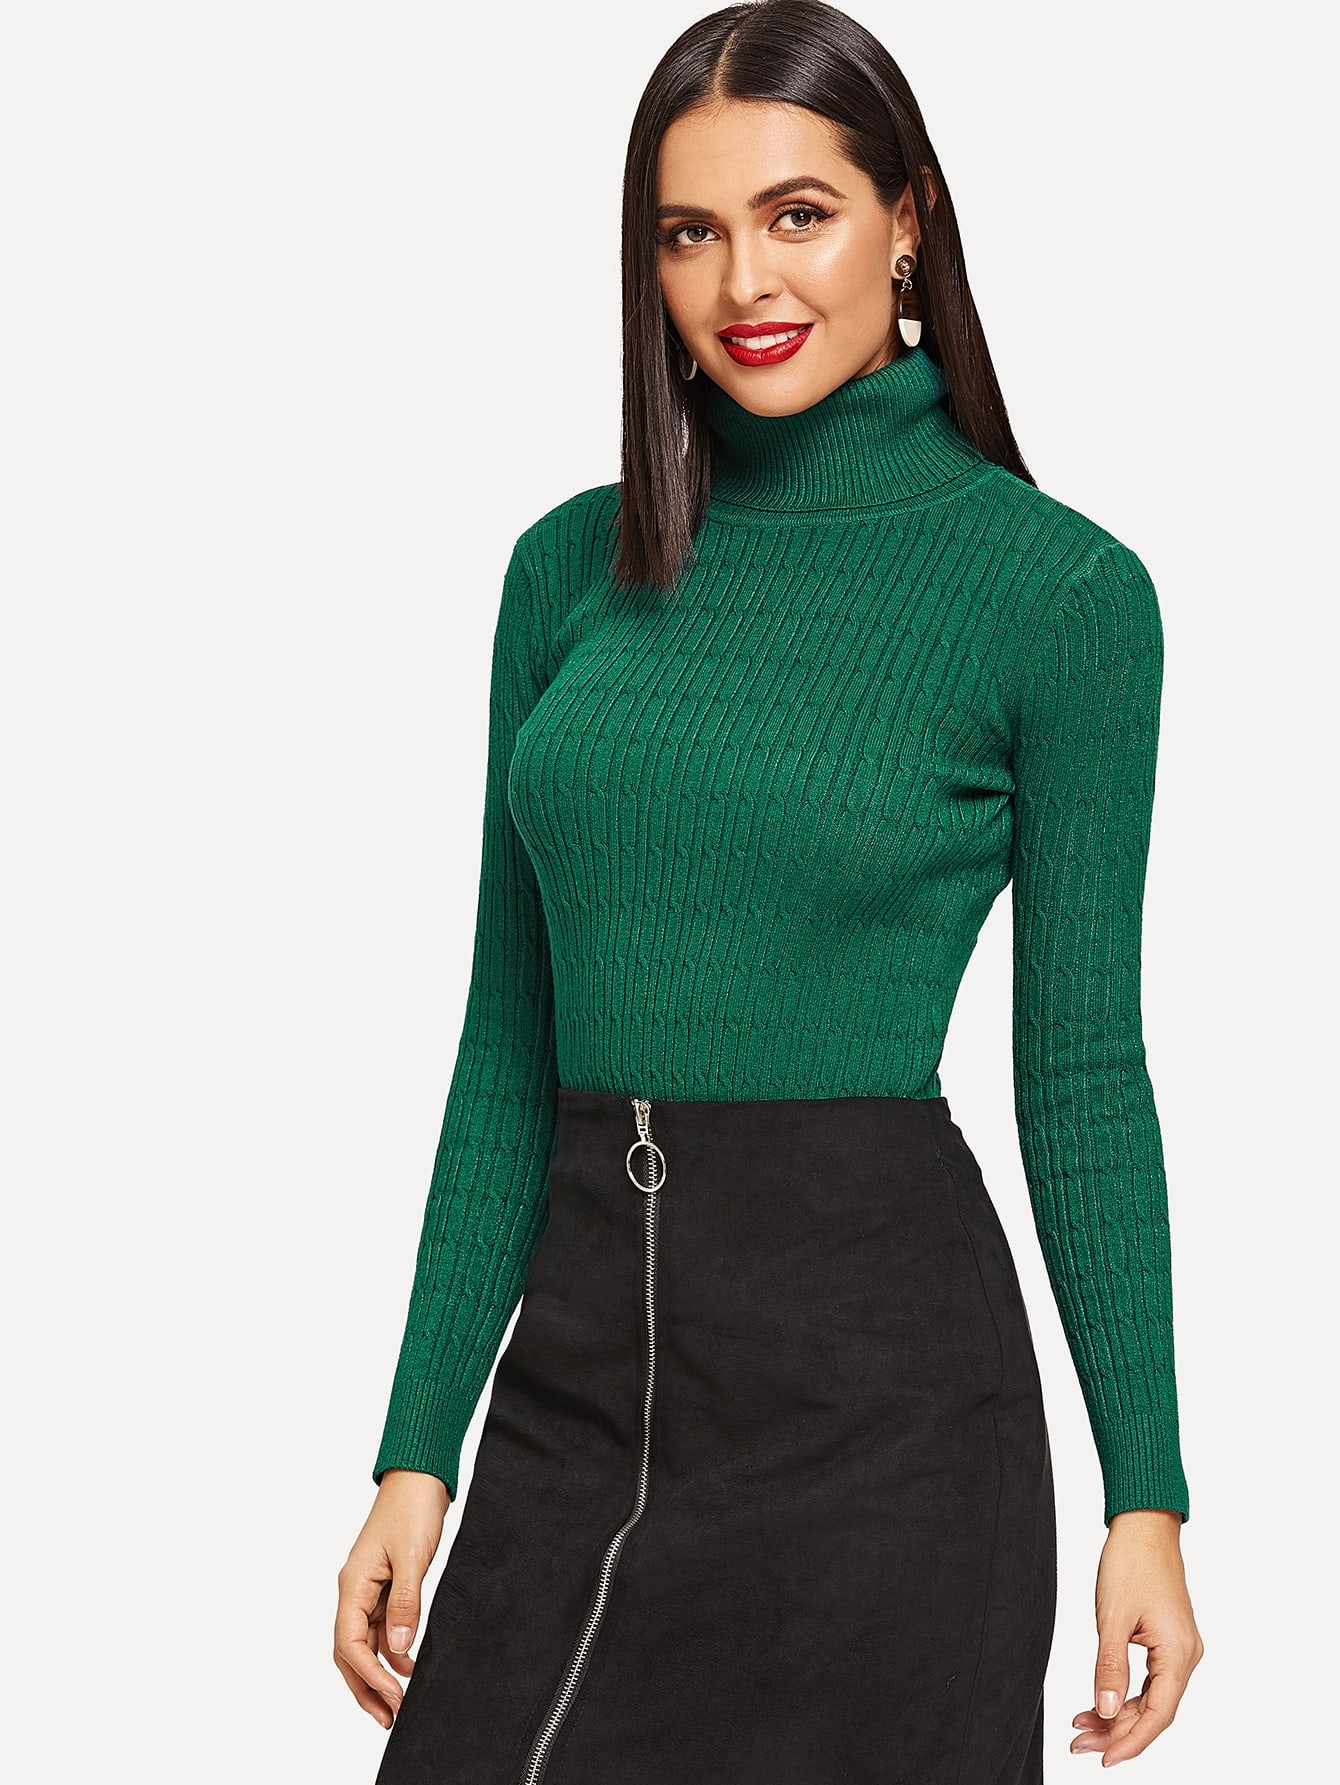 Turtle Neck Form Fitting Jumper Turtle Neck Form Fitting Jumper